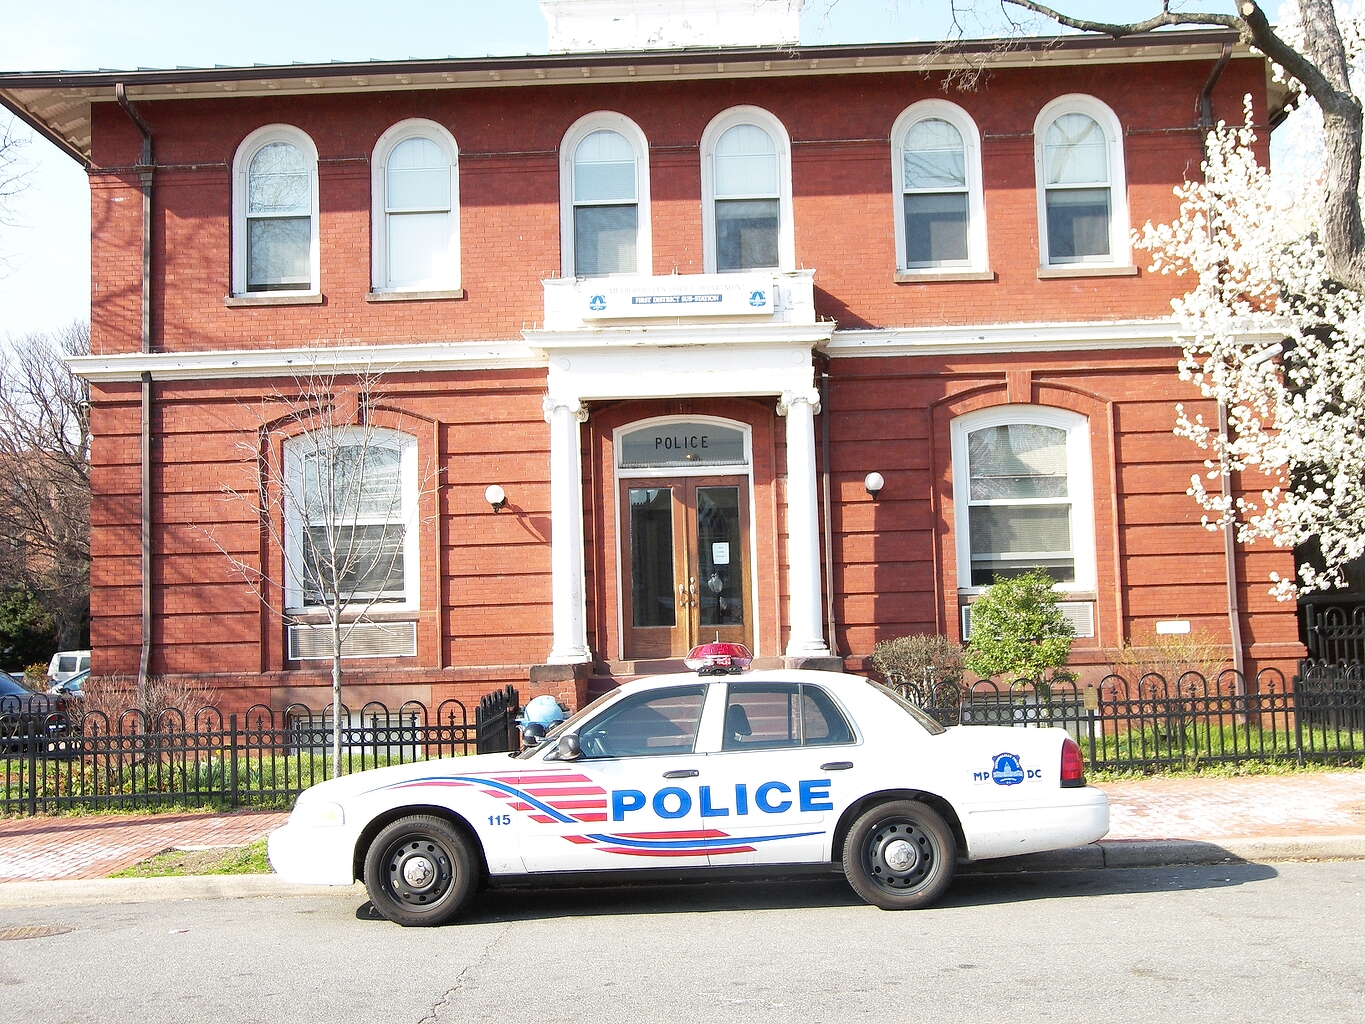 1D-1, Formerly the 5th Precinct.